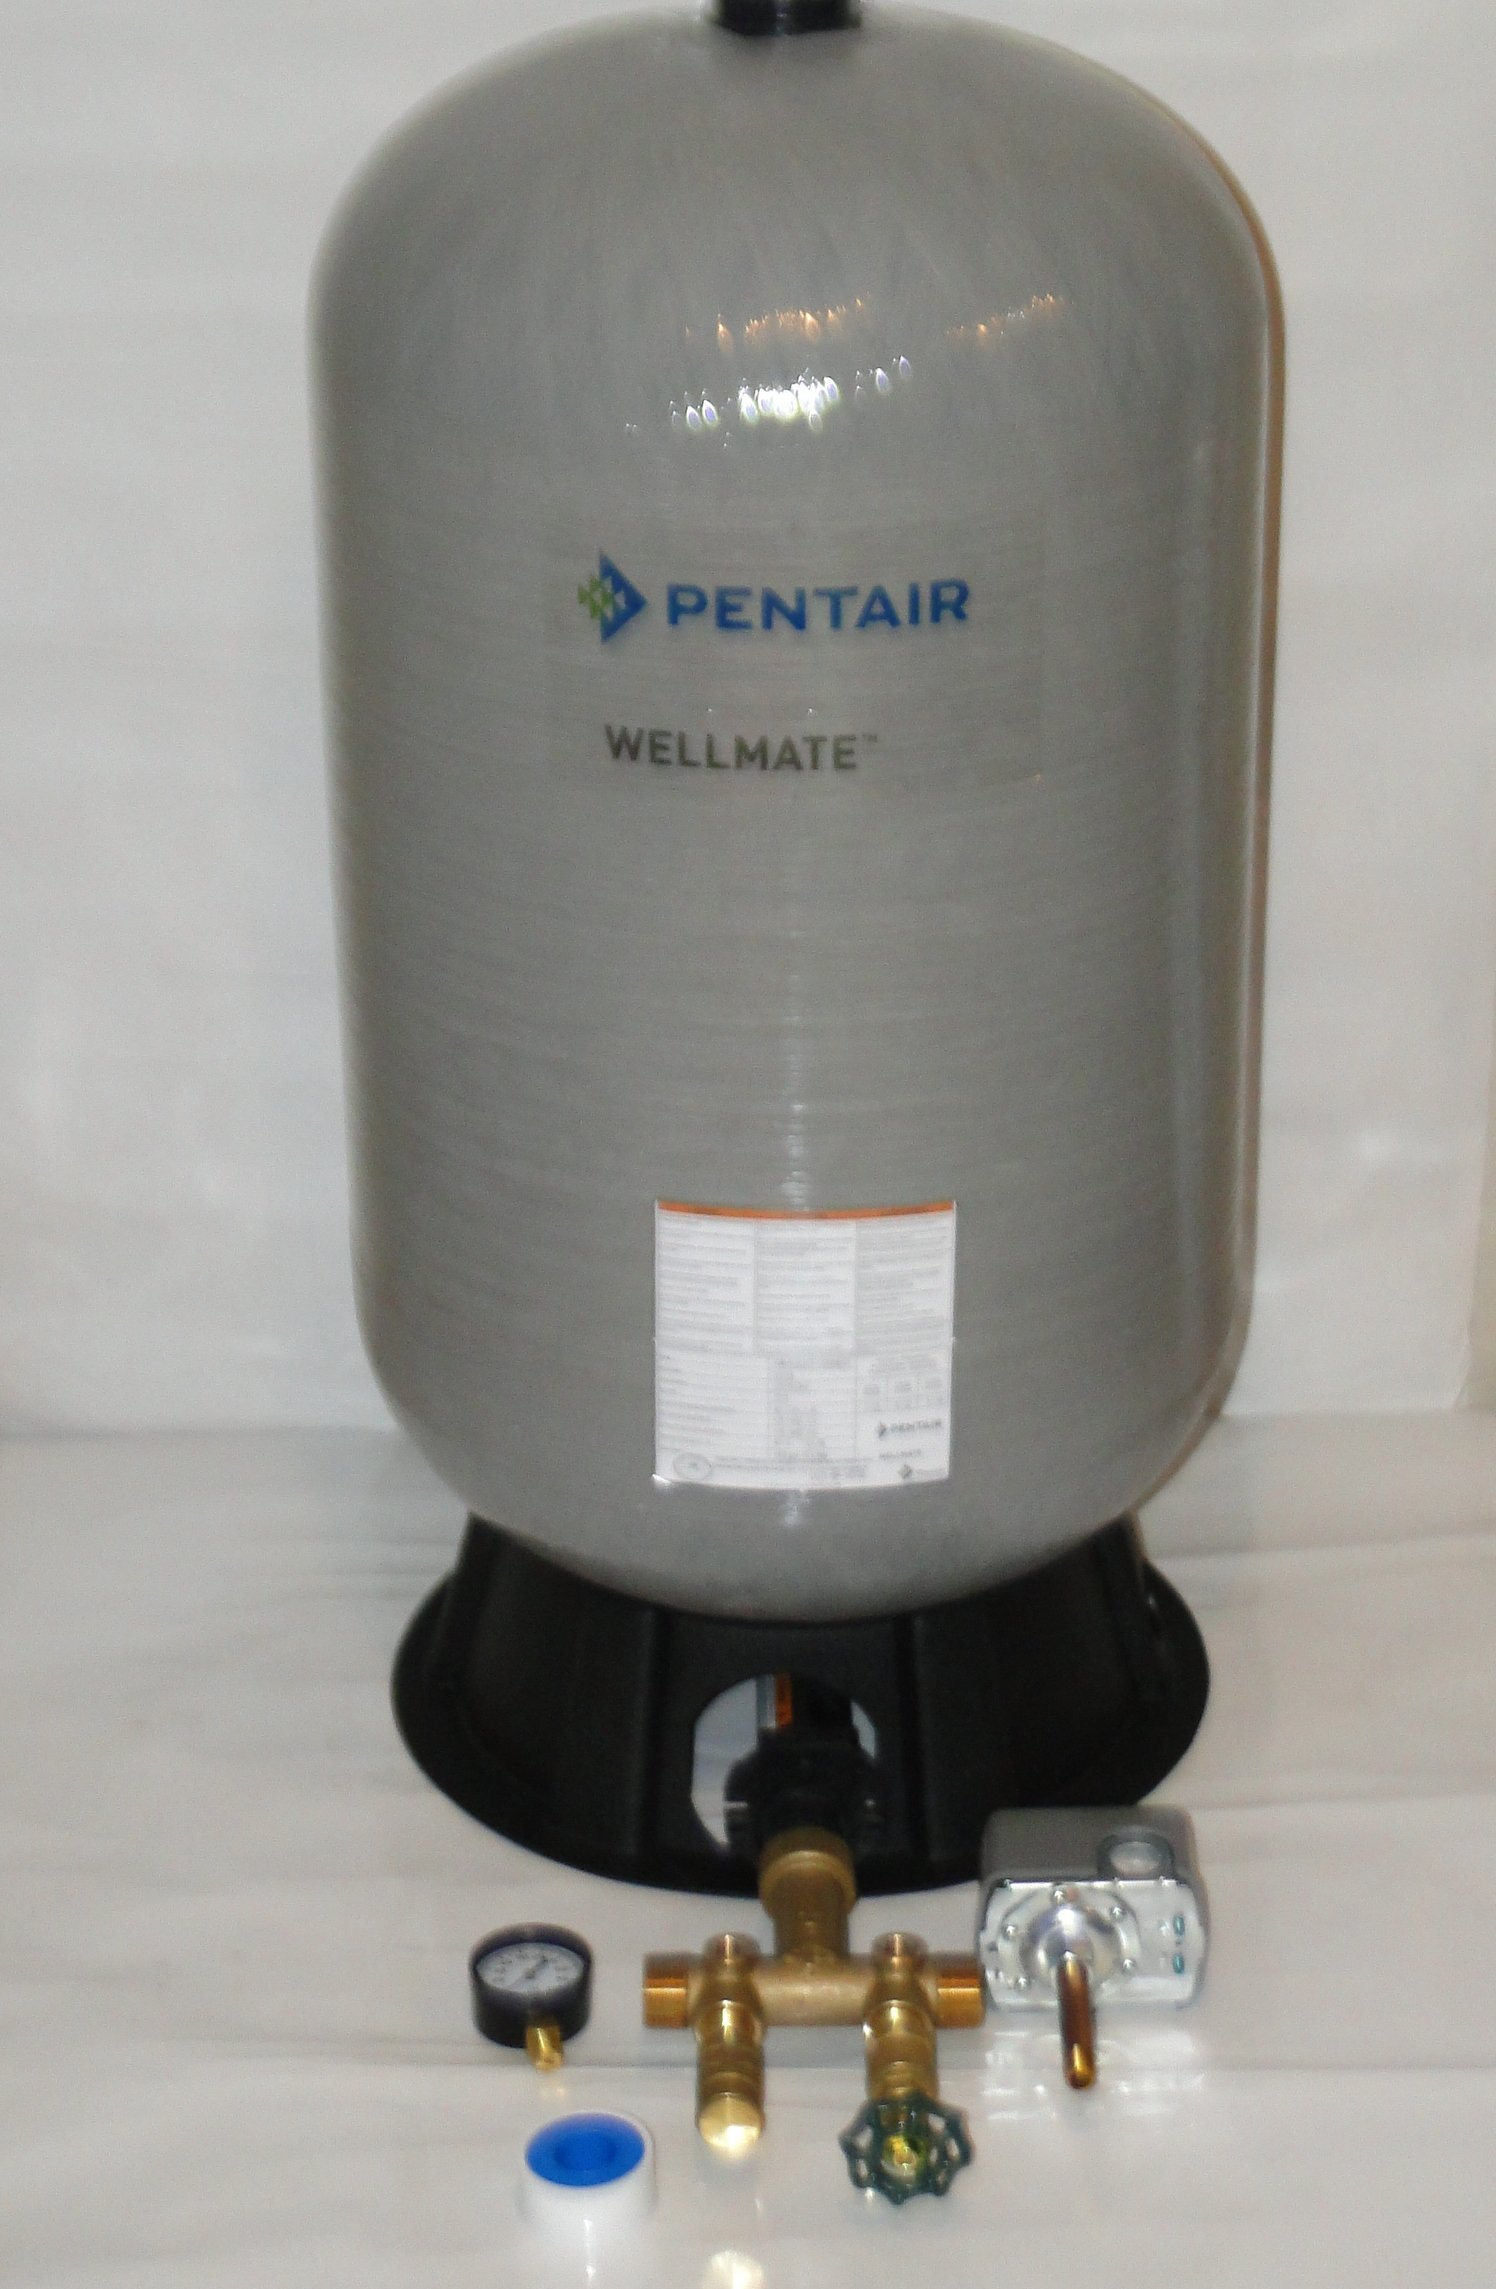 WELLMATE PENTAIR WM6 WM-6 20 gallon quick connect + Brass tank tee install kit Free standing Water Well PRESSURE TANK by Pentair